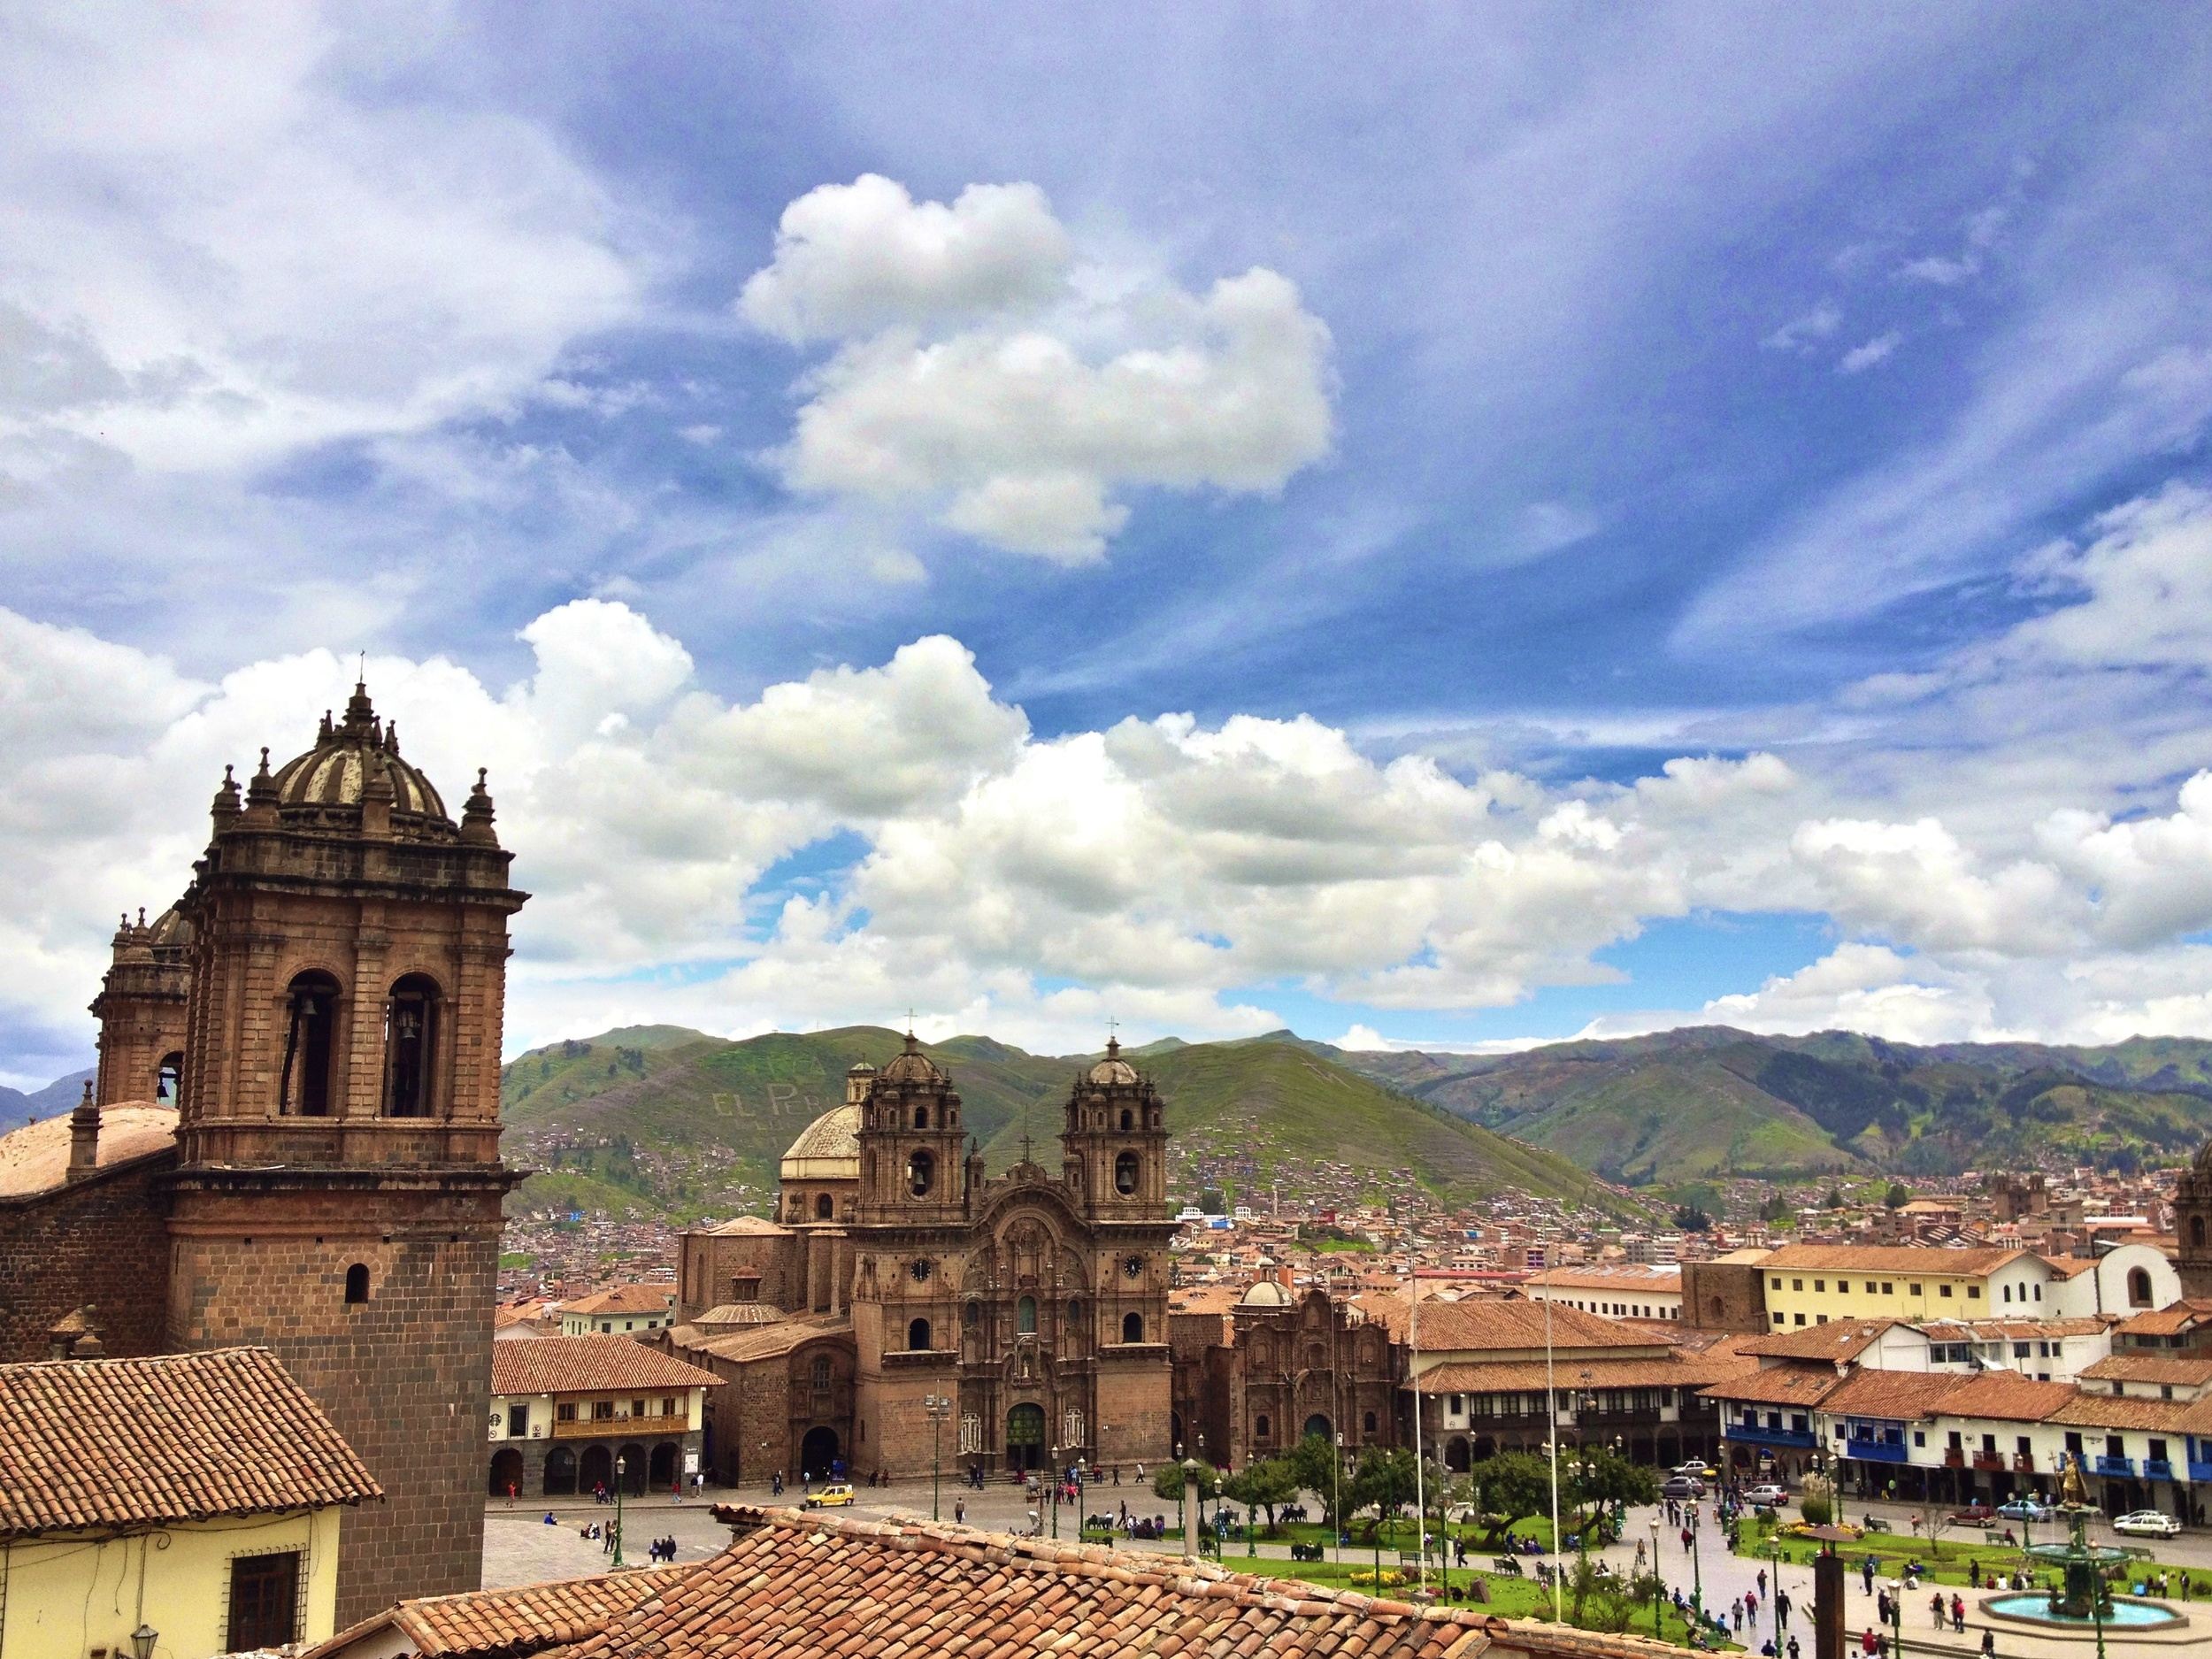 The beautiful city of Cusco, Peru